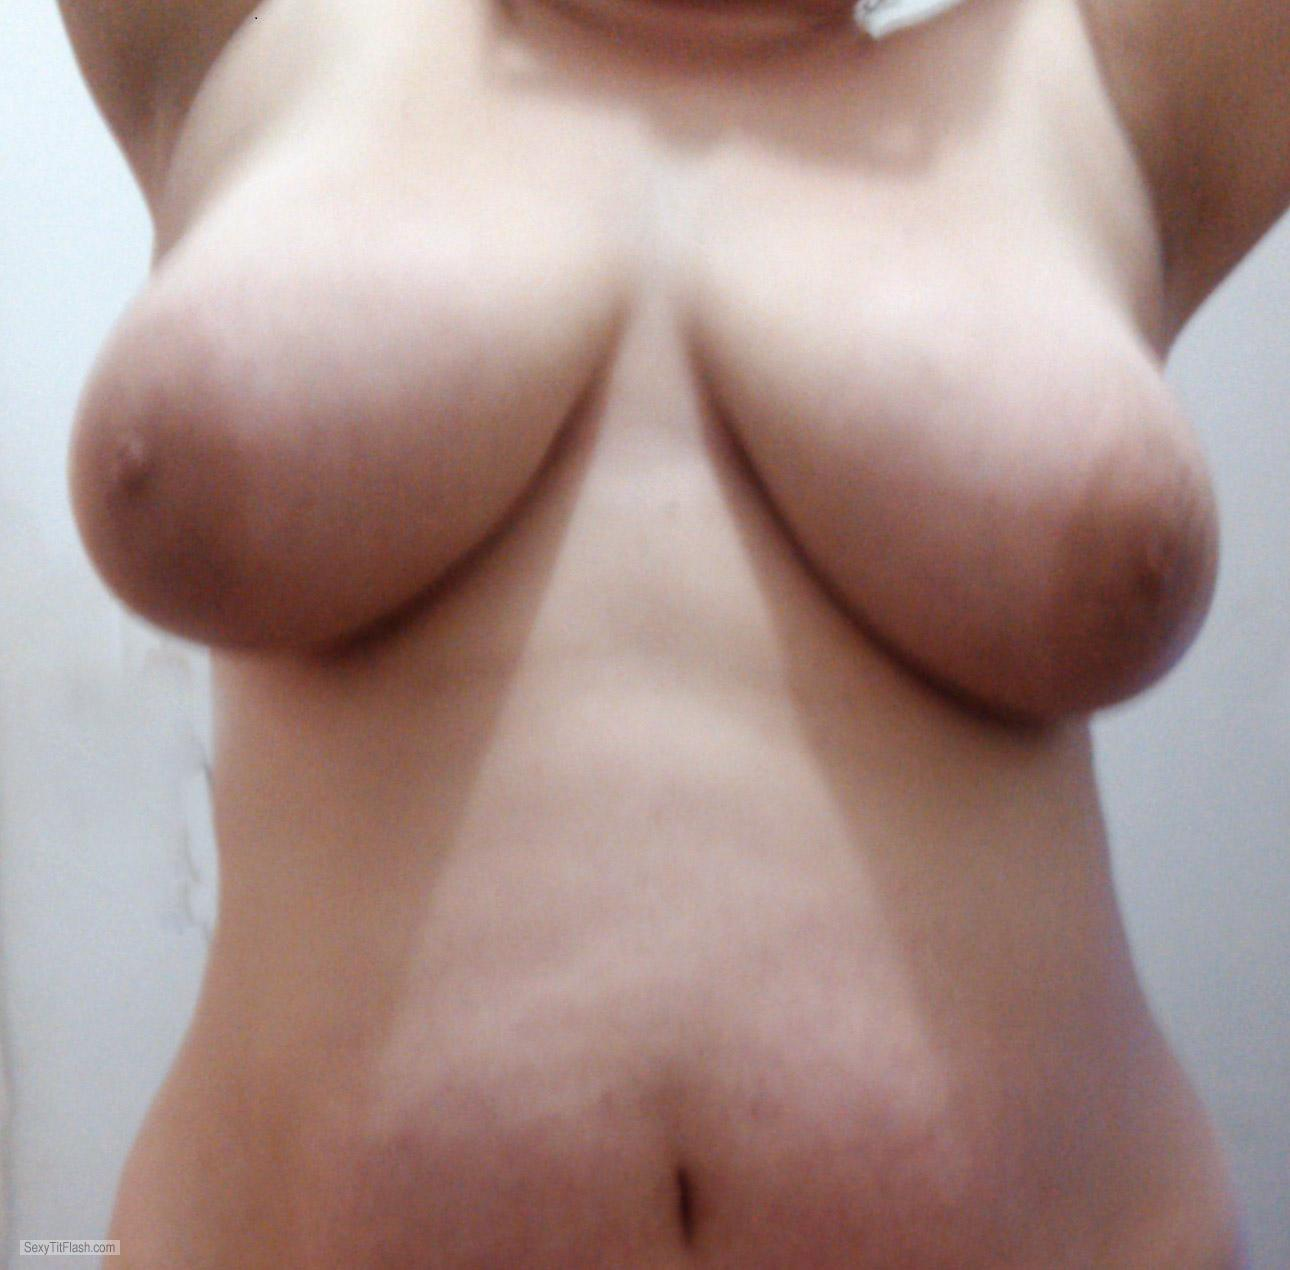 Tit Flash: Wife's Big Tits With Very Strong Tanlines - Love Tits from United States